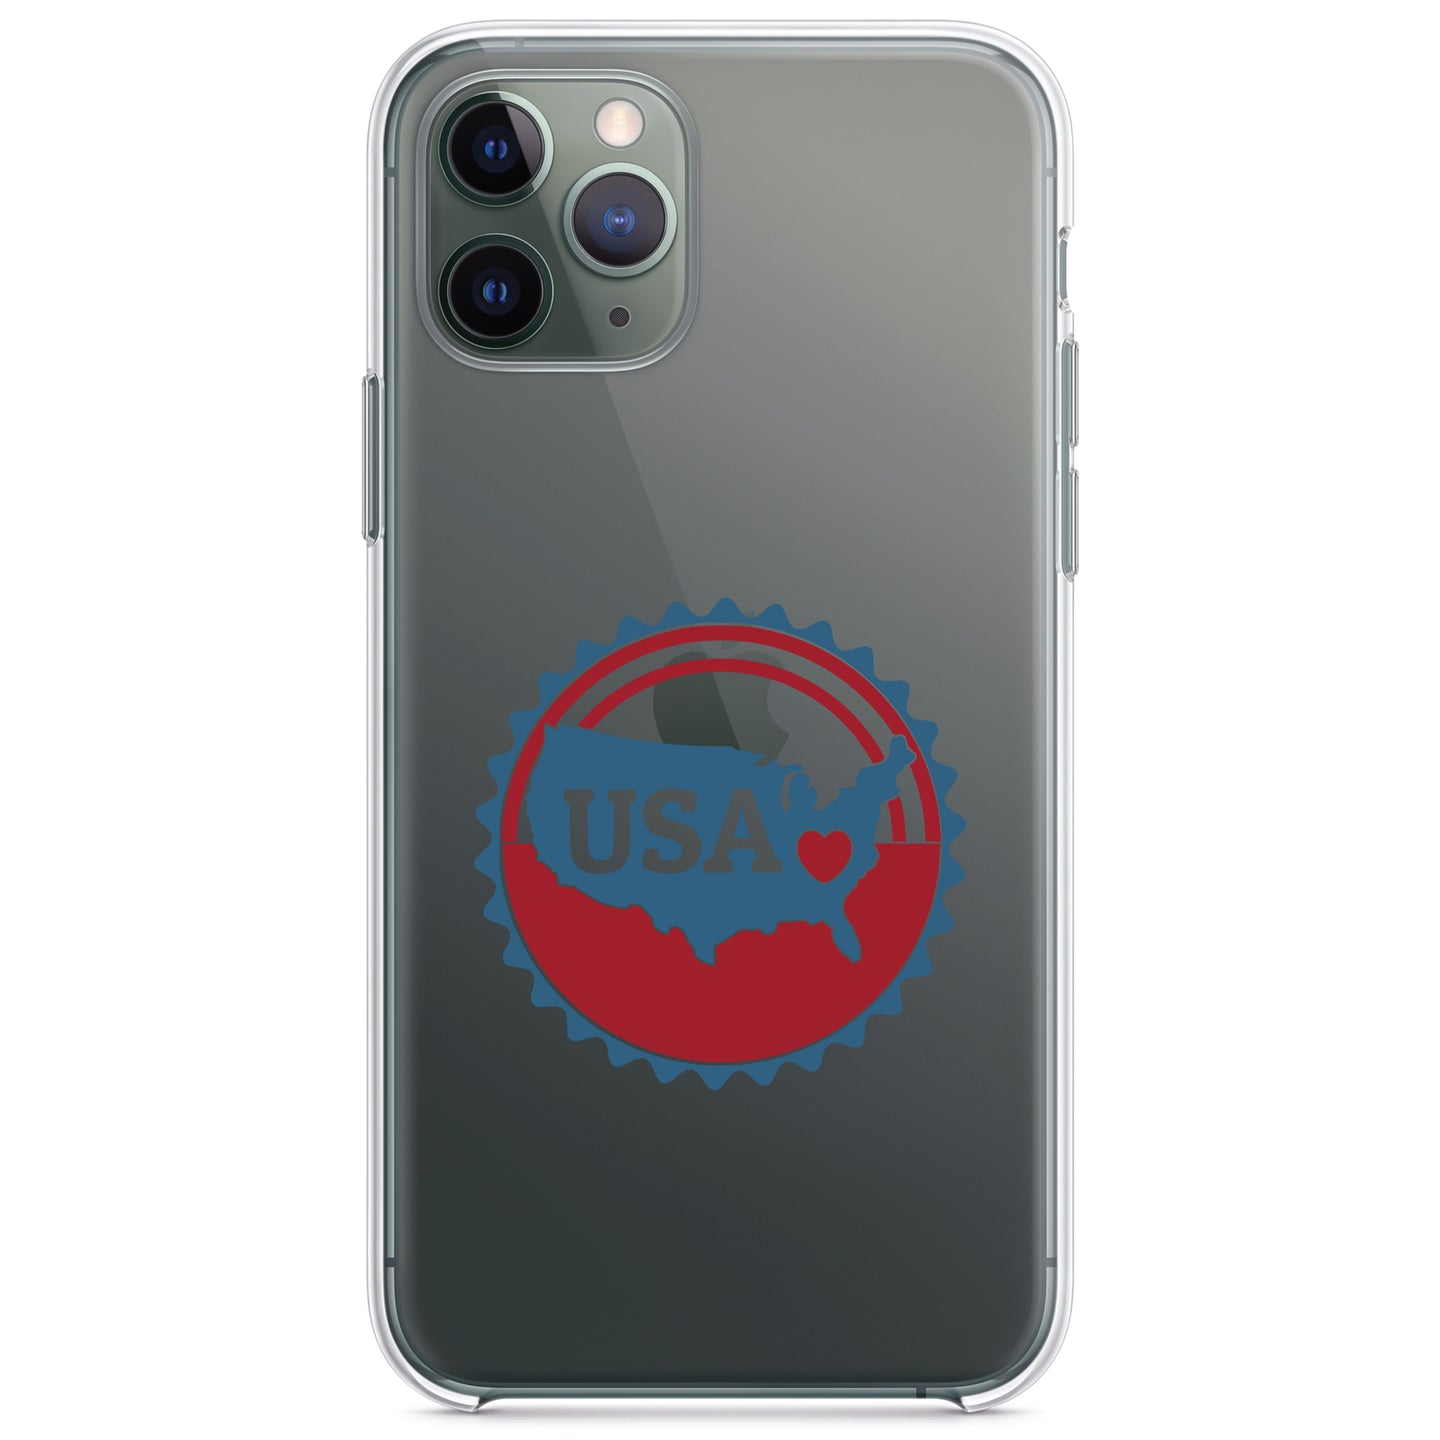 DistinctInk® Clear Shockproof Hybrid Case for Apple iPhone / Samsung Galaxy / Google Pixel - USA Heart Seal Red White & Blue